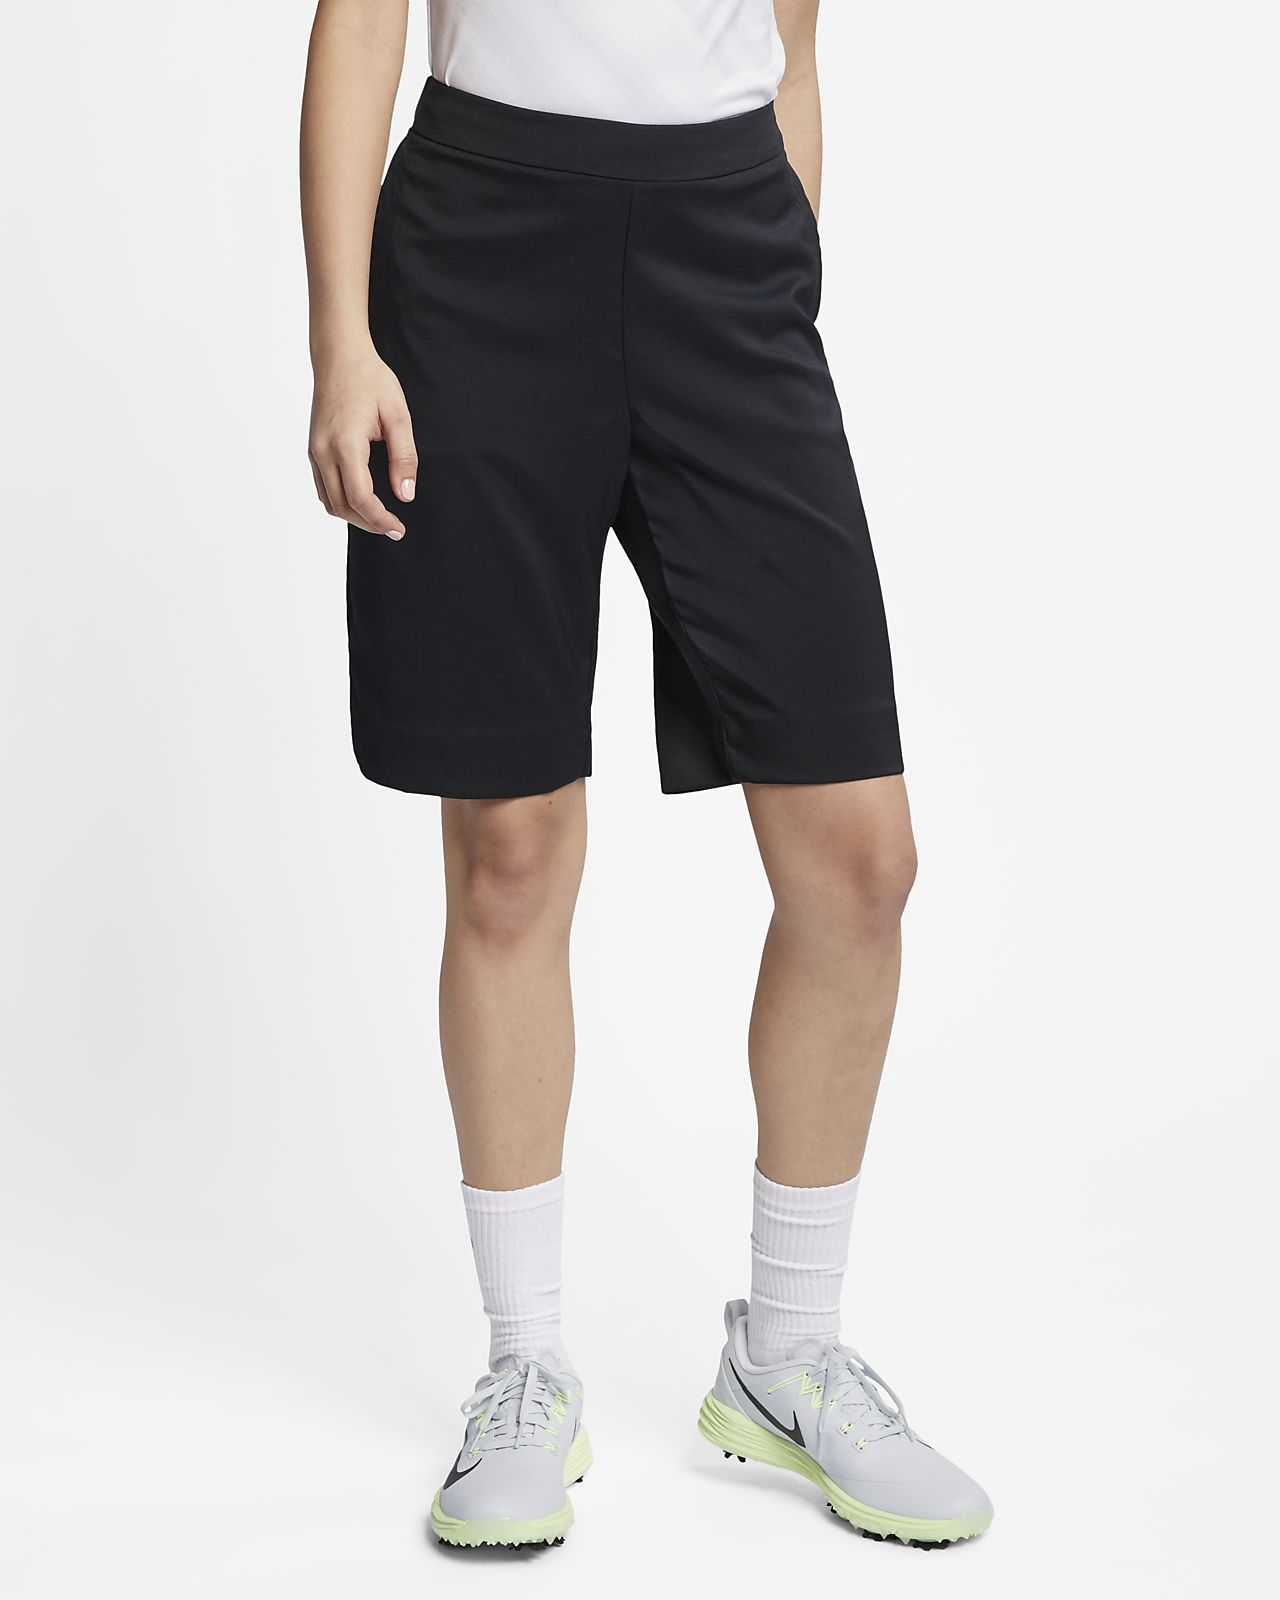 Shorts de golf de 28 cm para mujer Nike Dri-FIT UV